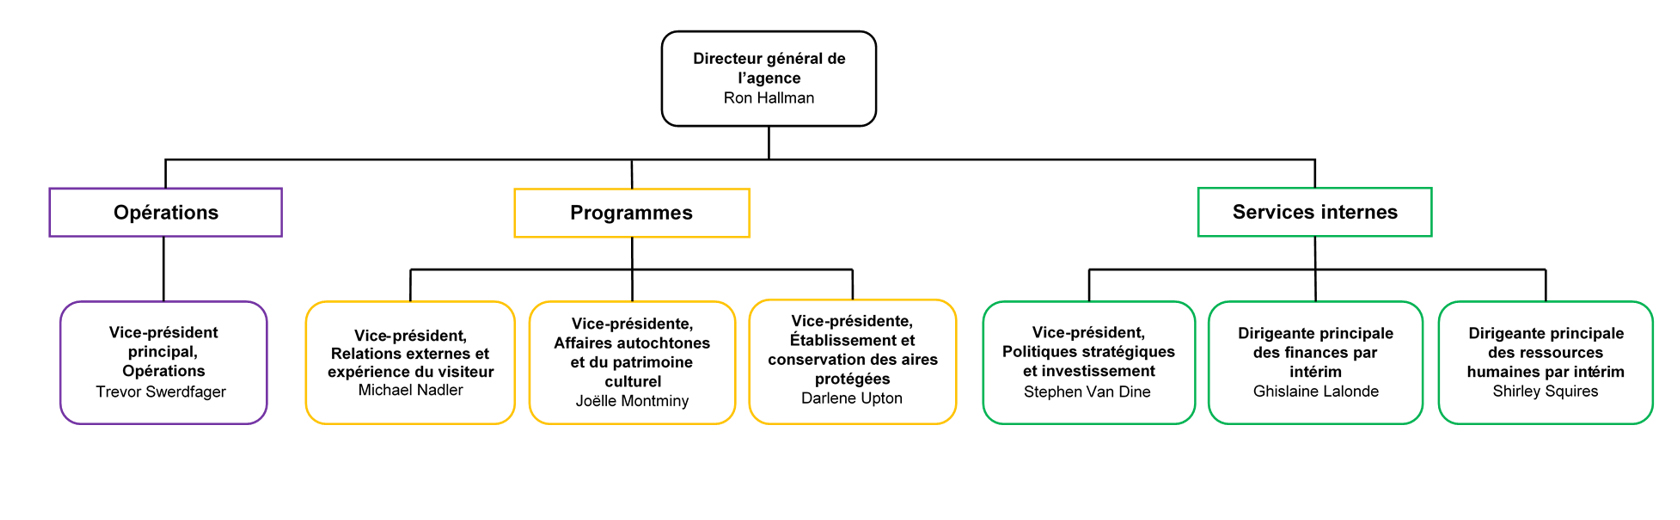 A chart showing the organization of Parks Canada's senior management into three categories: Operations, Programs, and Internal Support Services.